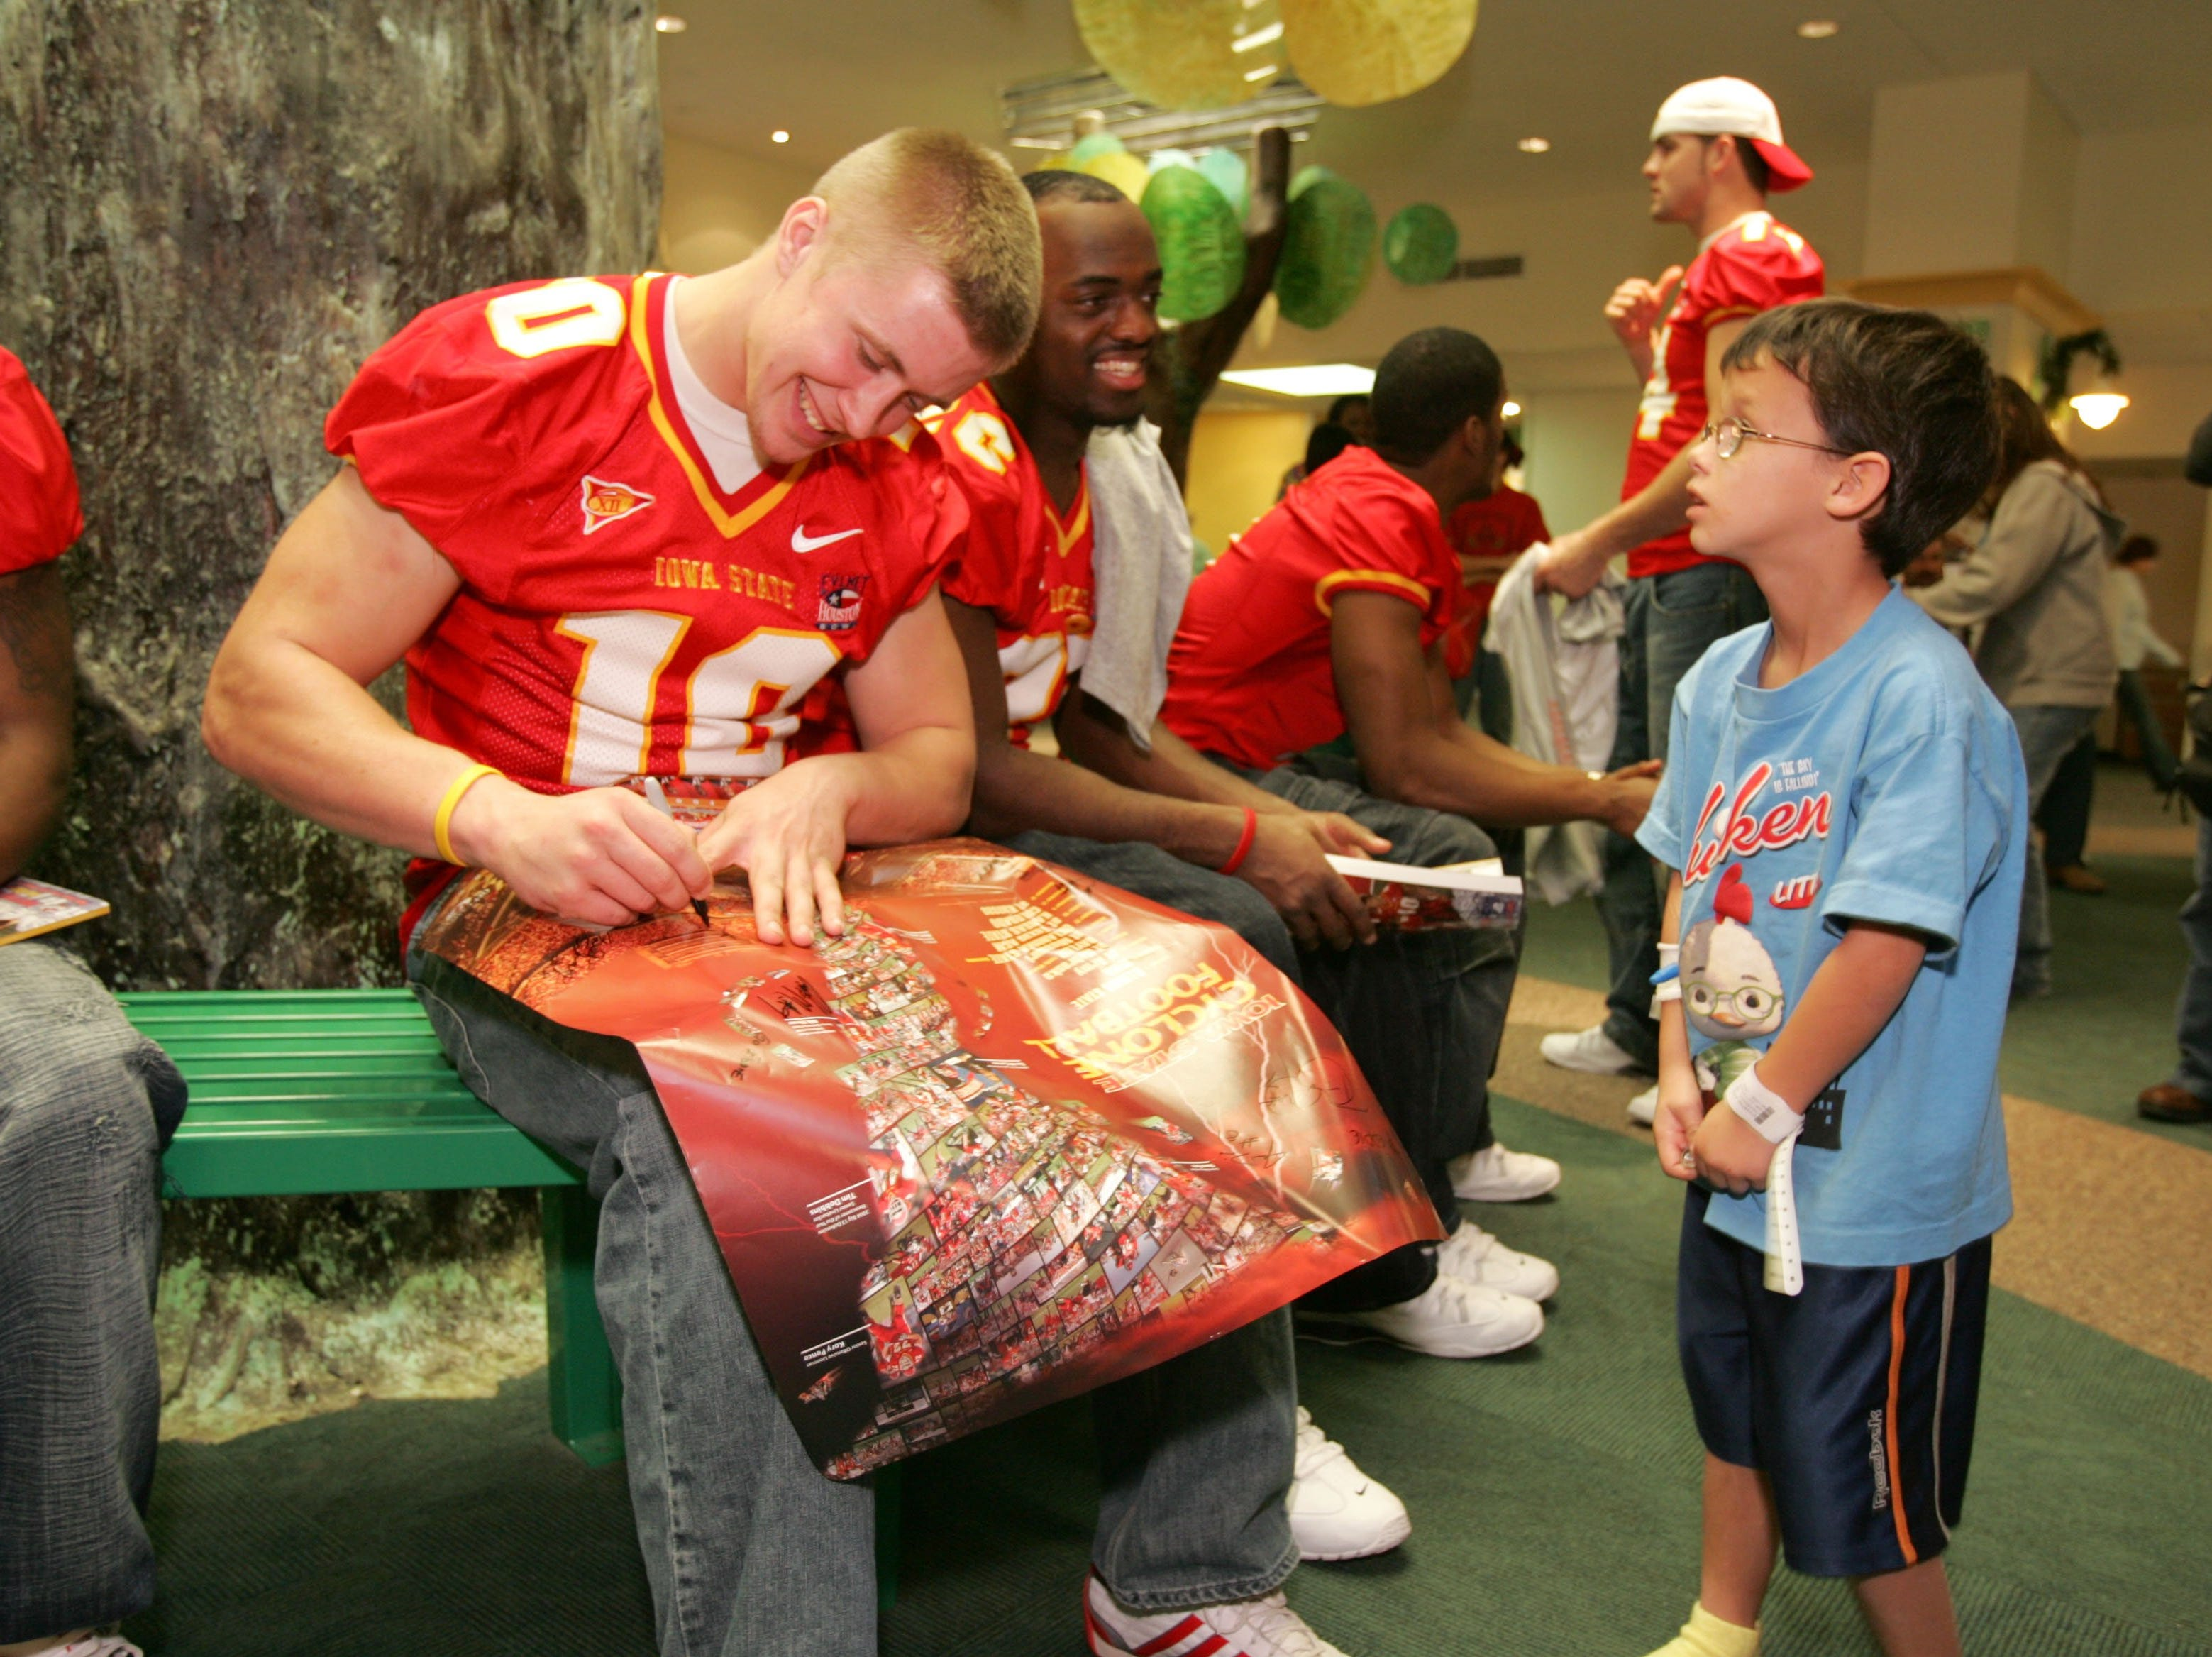 Cyclone player Kyle Van Winkle signs a poster at a children's hospital in Houston before the 2005 Houston Bowl.